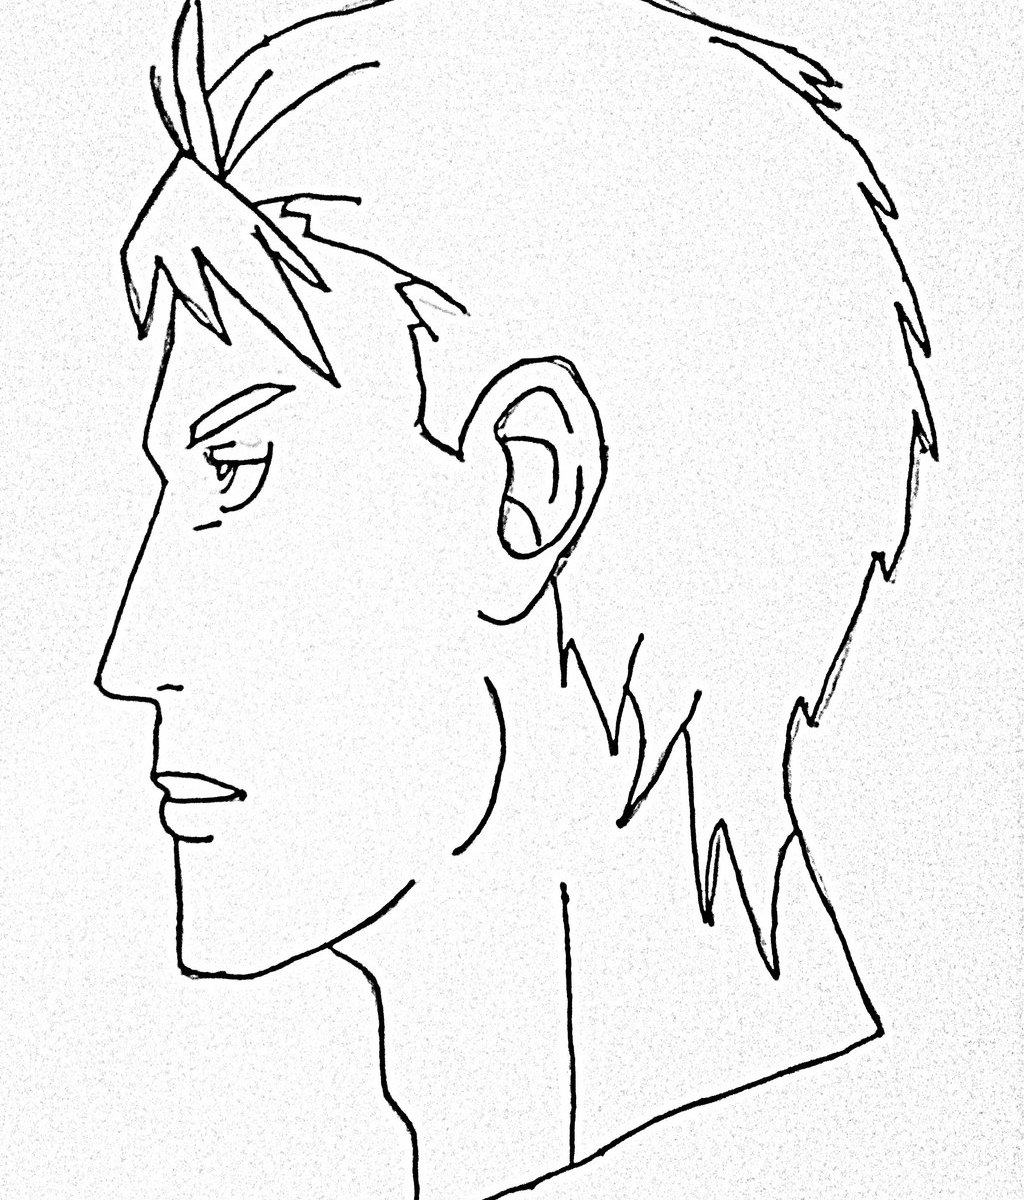 How To Draw Male Anime Face Side View Step By Step For Beginner Easy